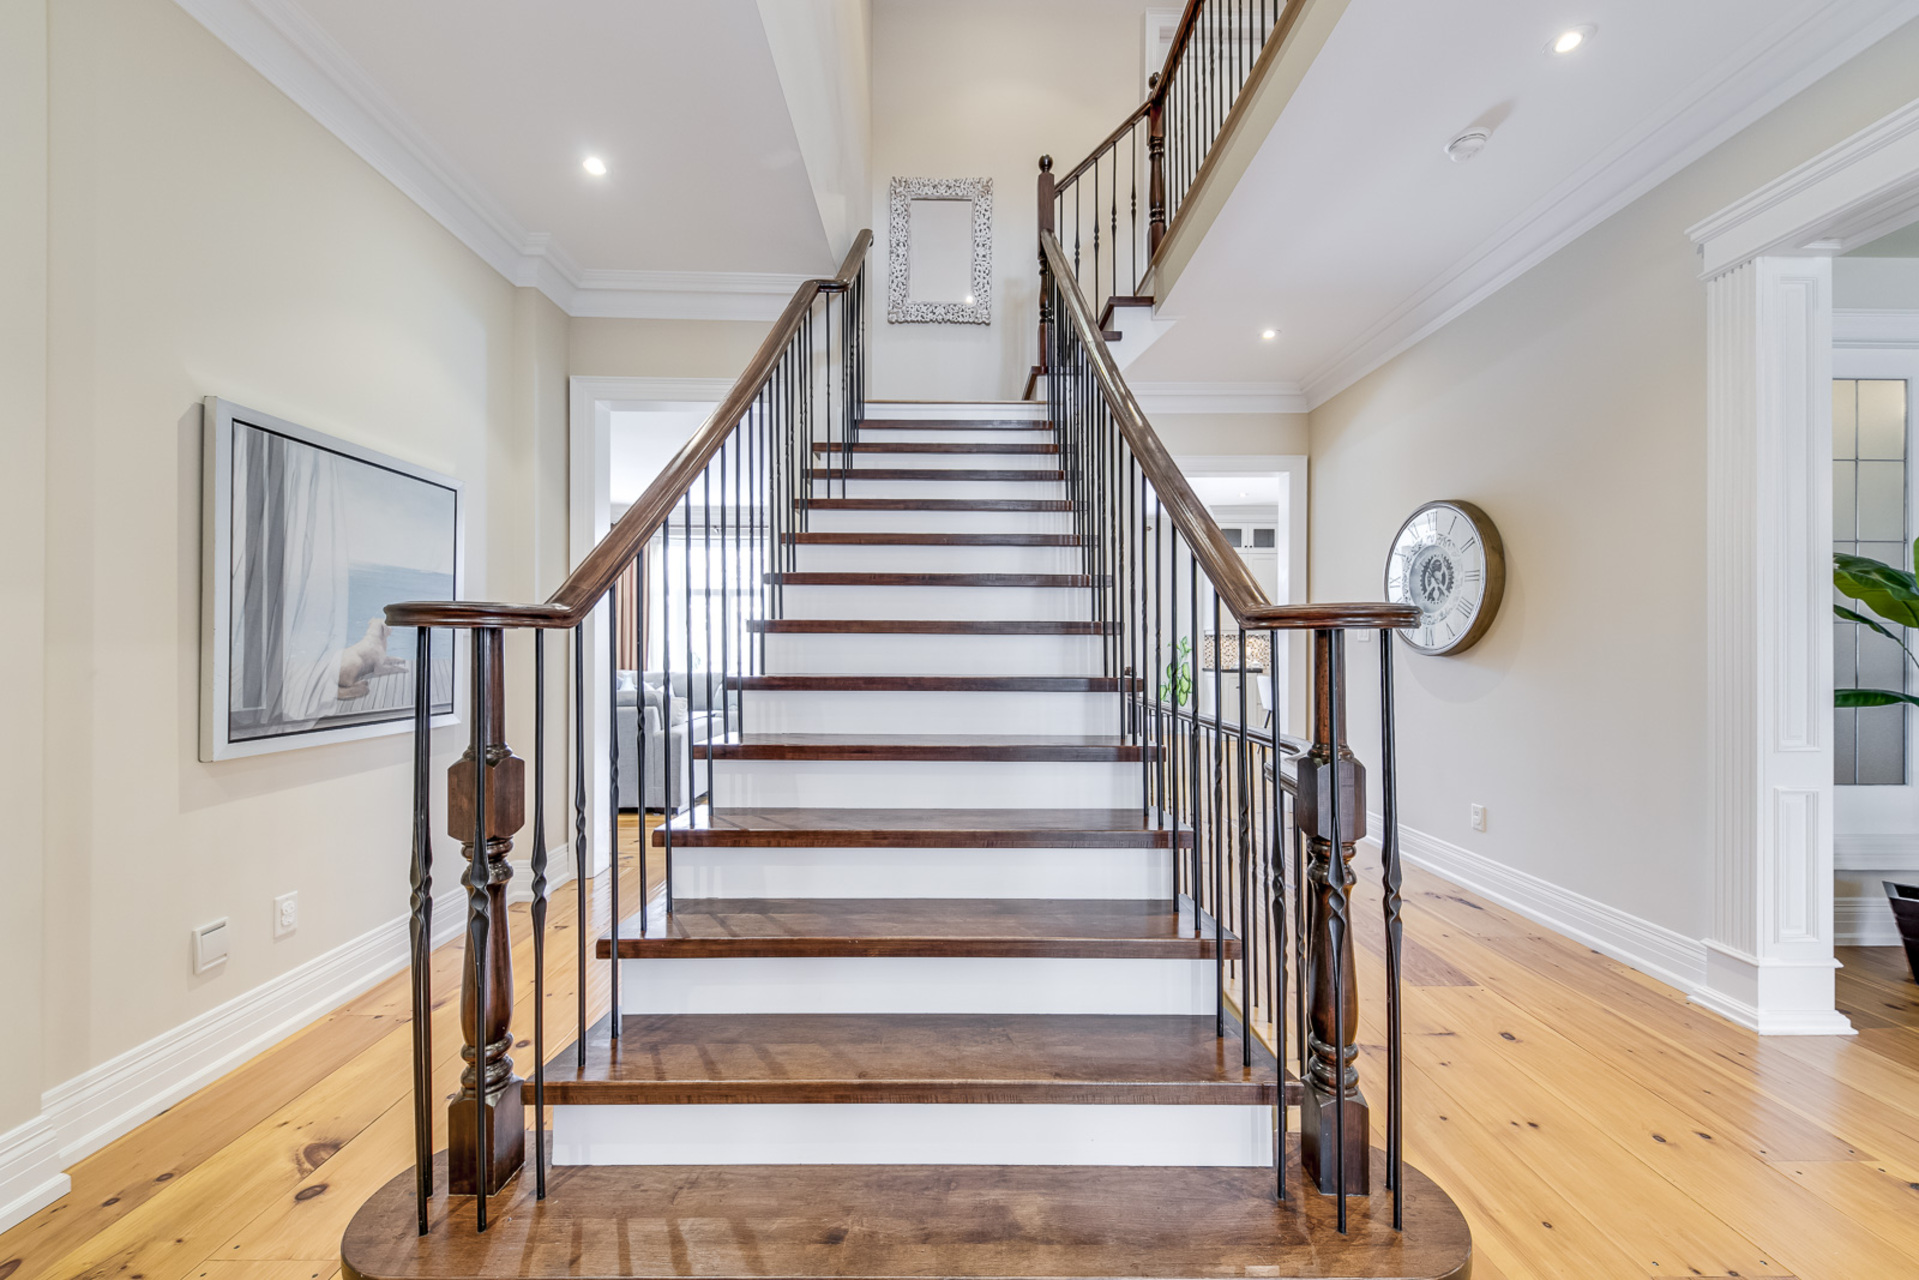 Main Staircase - 725 Queensway W, Mississauga - Elite3 & Team at 725 Queensway West, Erindale, Mississauga